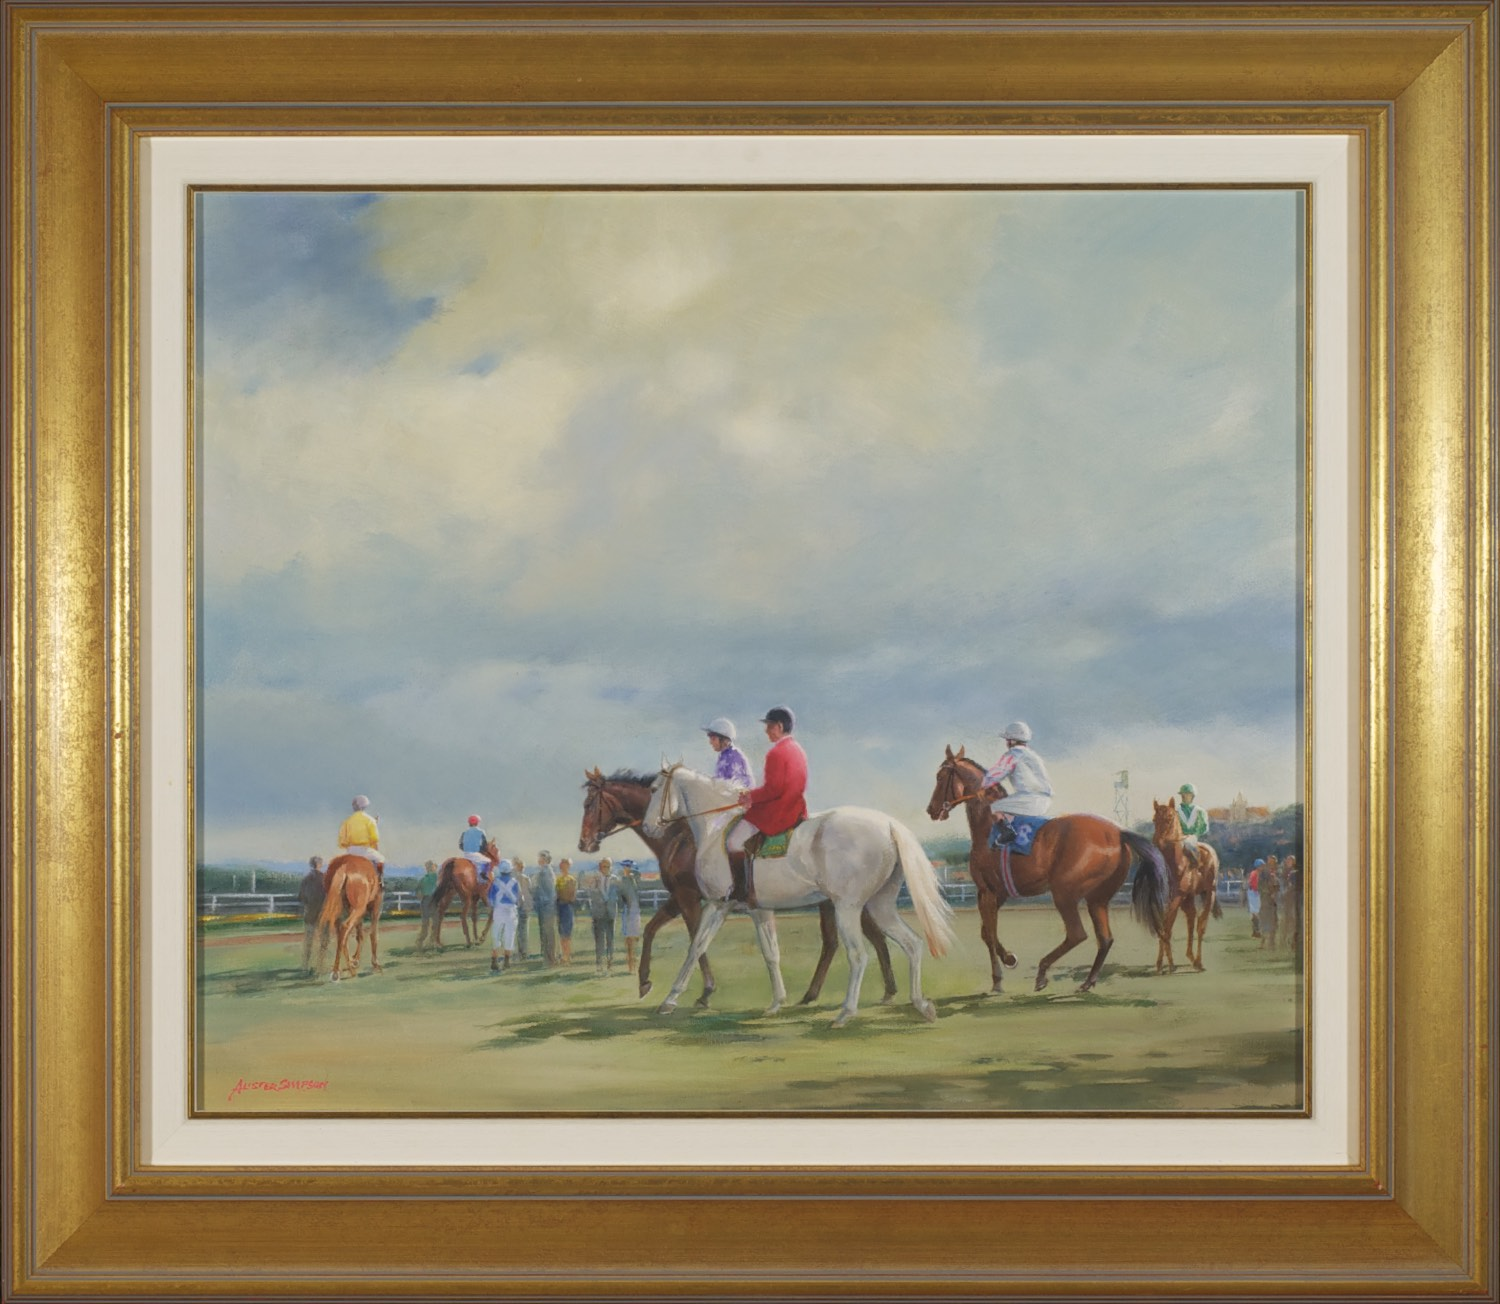 #6041. Alister Simpson. Cloudy Day at Royal Randwick. 71cm x 81cm.